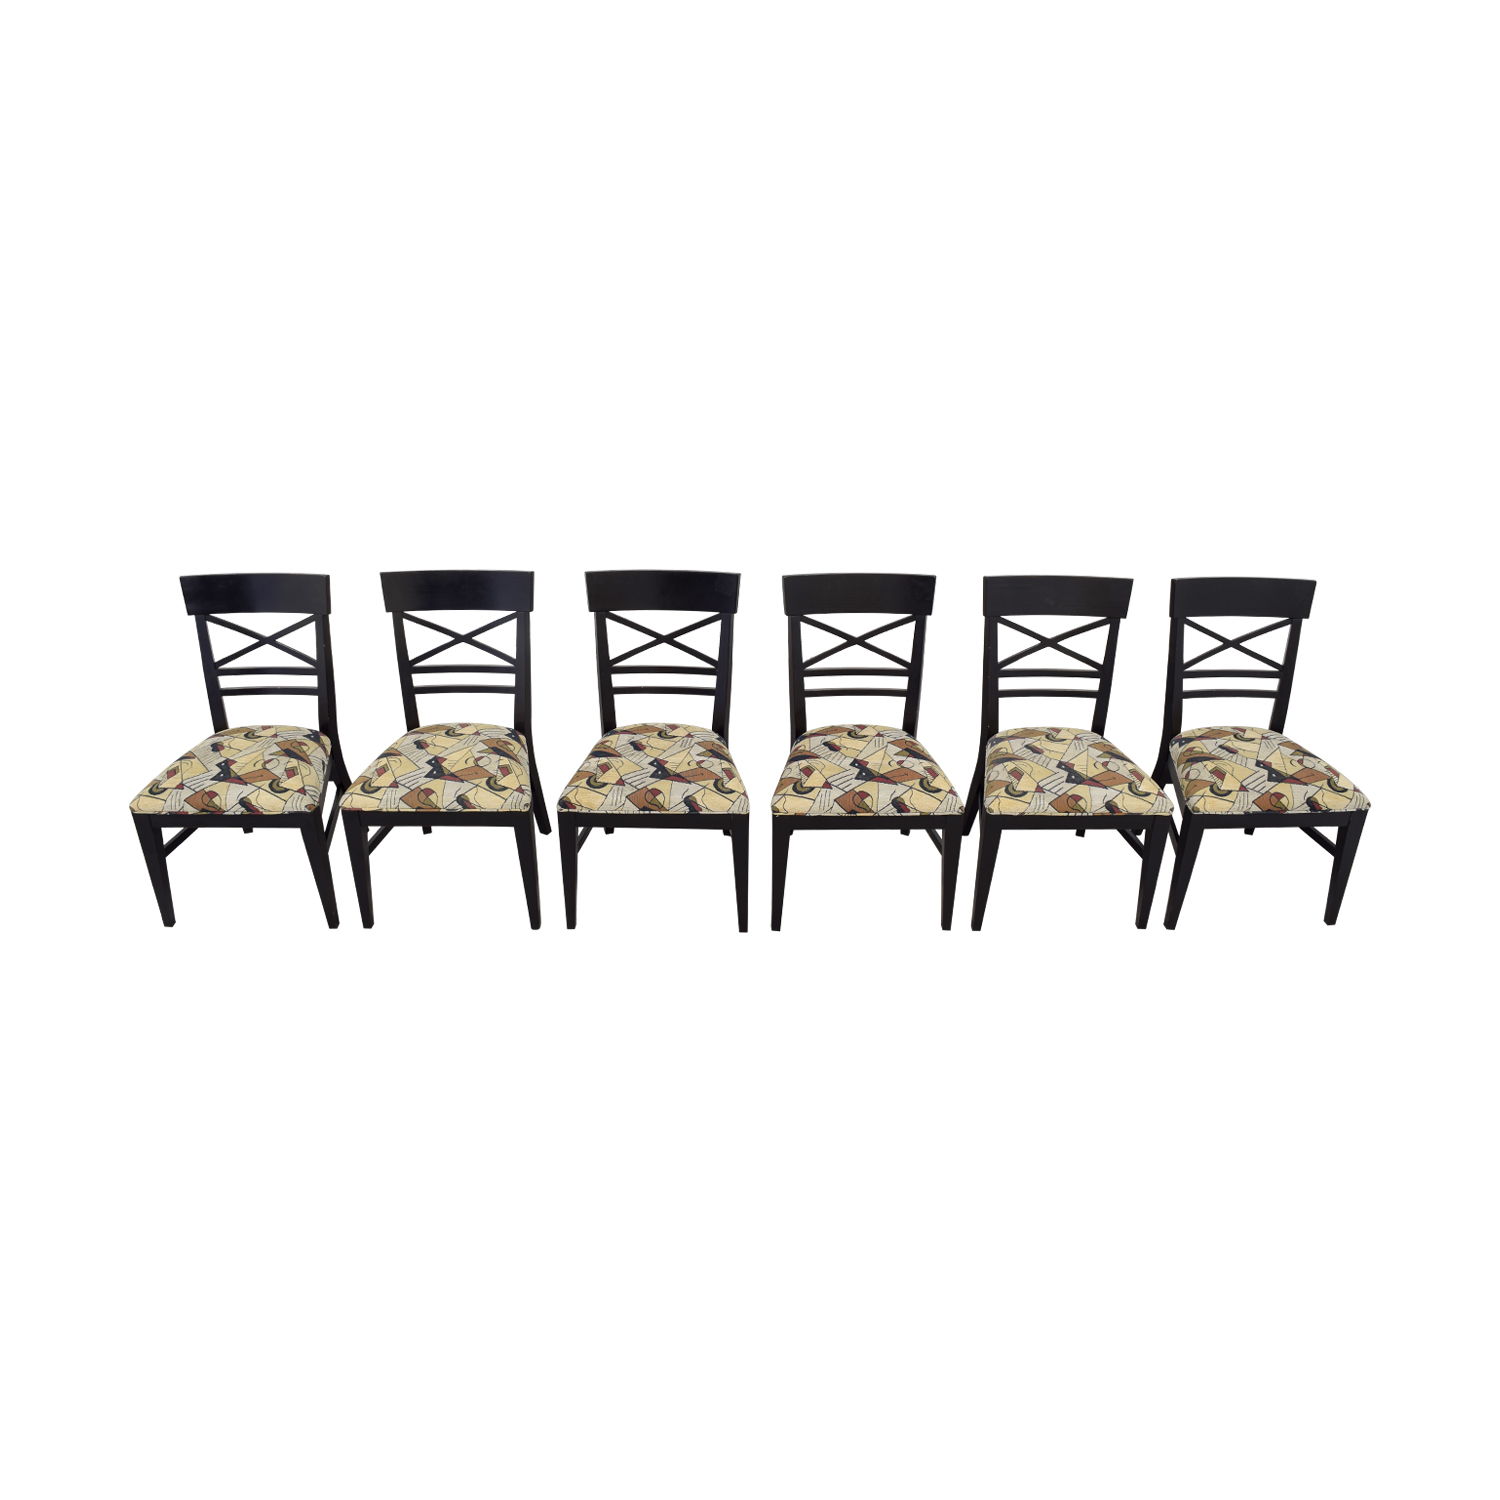 Ethan Allan Ethan Allan Geometric Upholstered Dining Chairs price